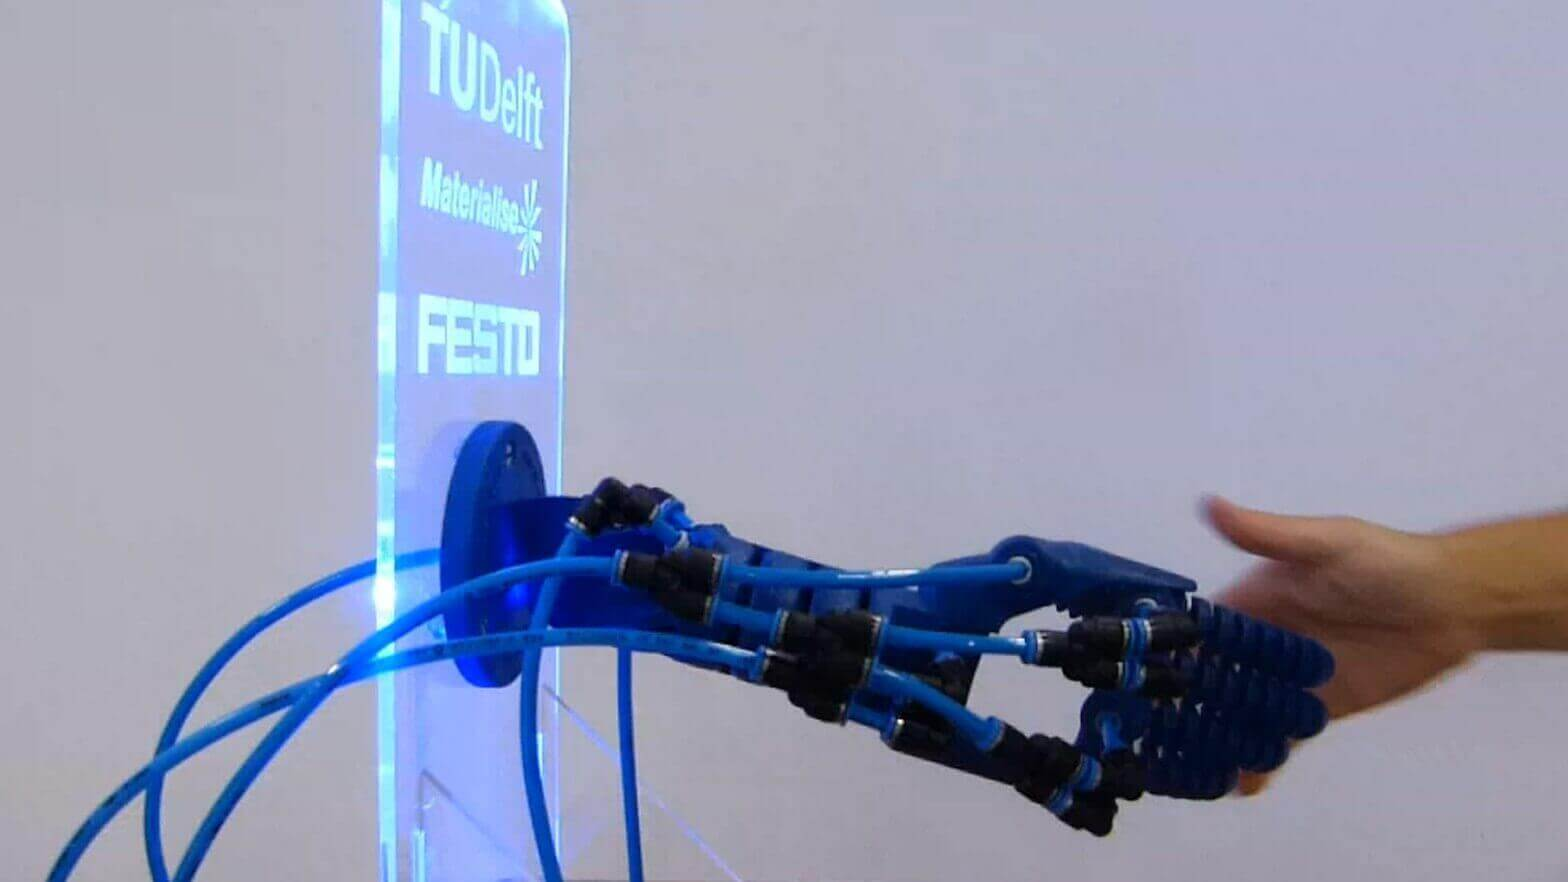 Soft Robotics Hand Improves Robot-Human Interactions | All3DP